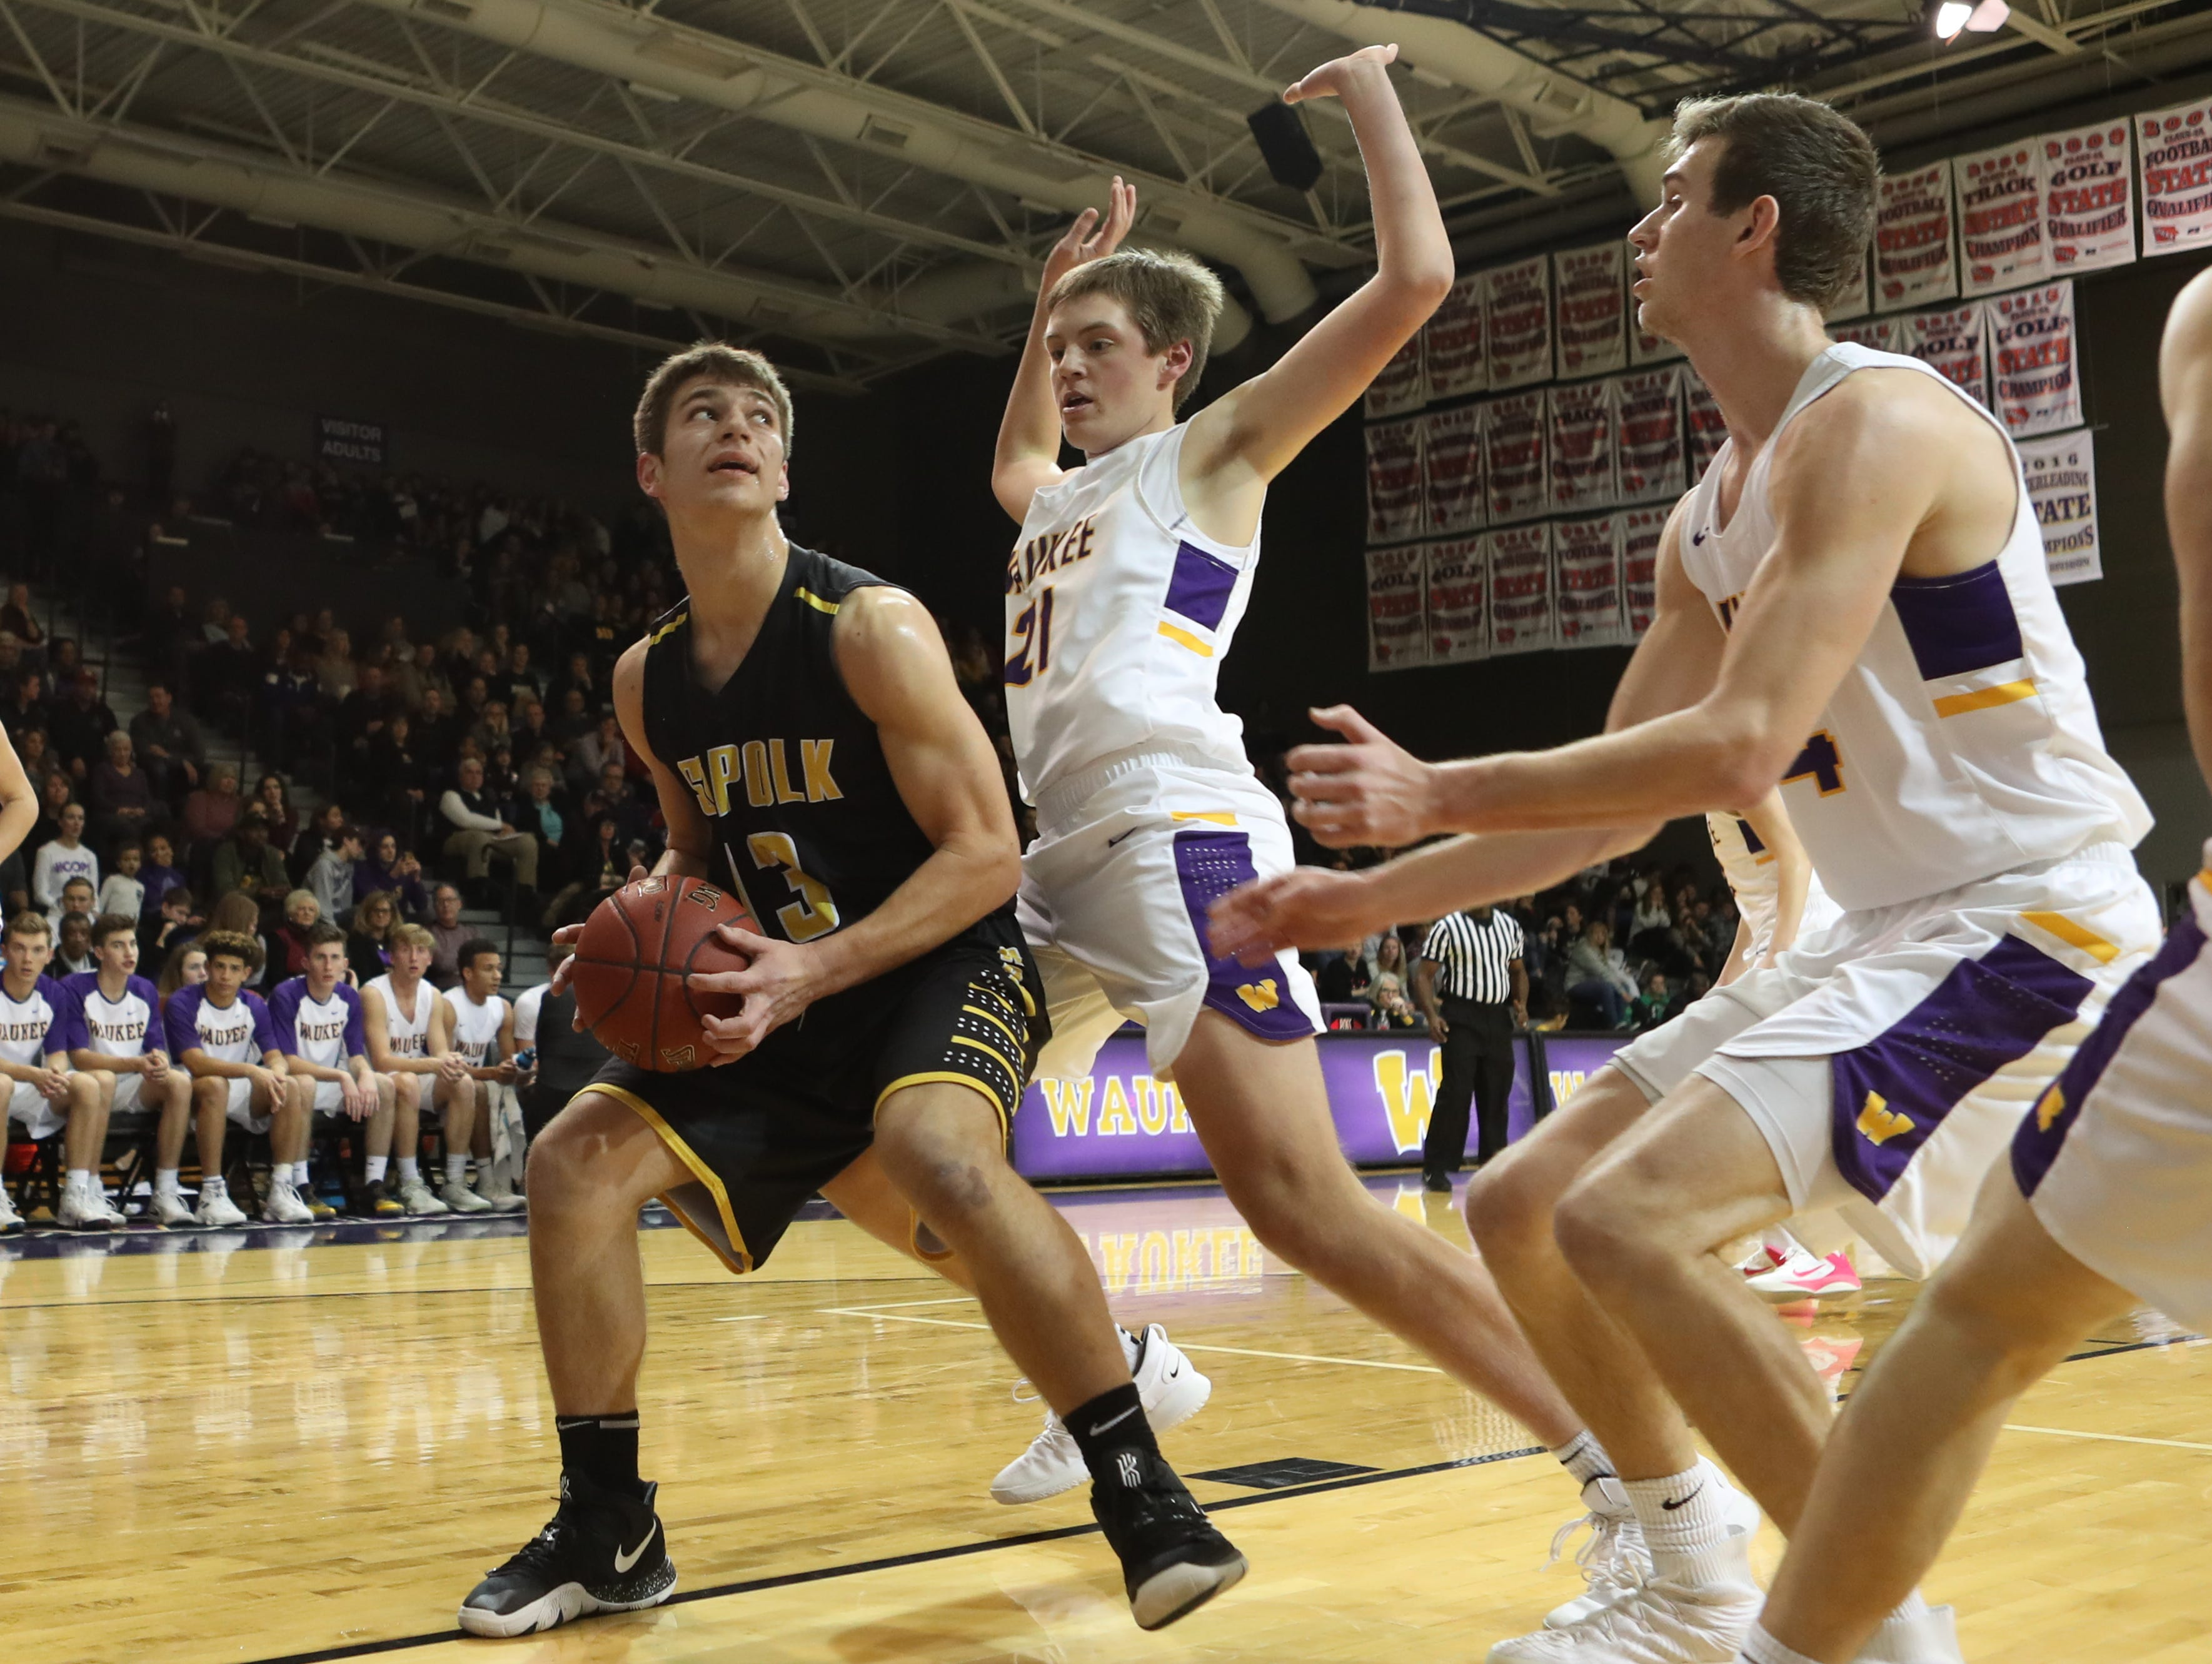 Dec 21, 2018; Waukee IA  USA; Southeast Polk Rams Dominic Caggiano (13) is pressured by Waukee Warriors Payton Sandfort (21) and Waukee Warriors Dylan Jones (4)  at Waukee High School. Mandatory Credit: Reese Strickland-for the register